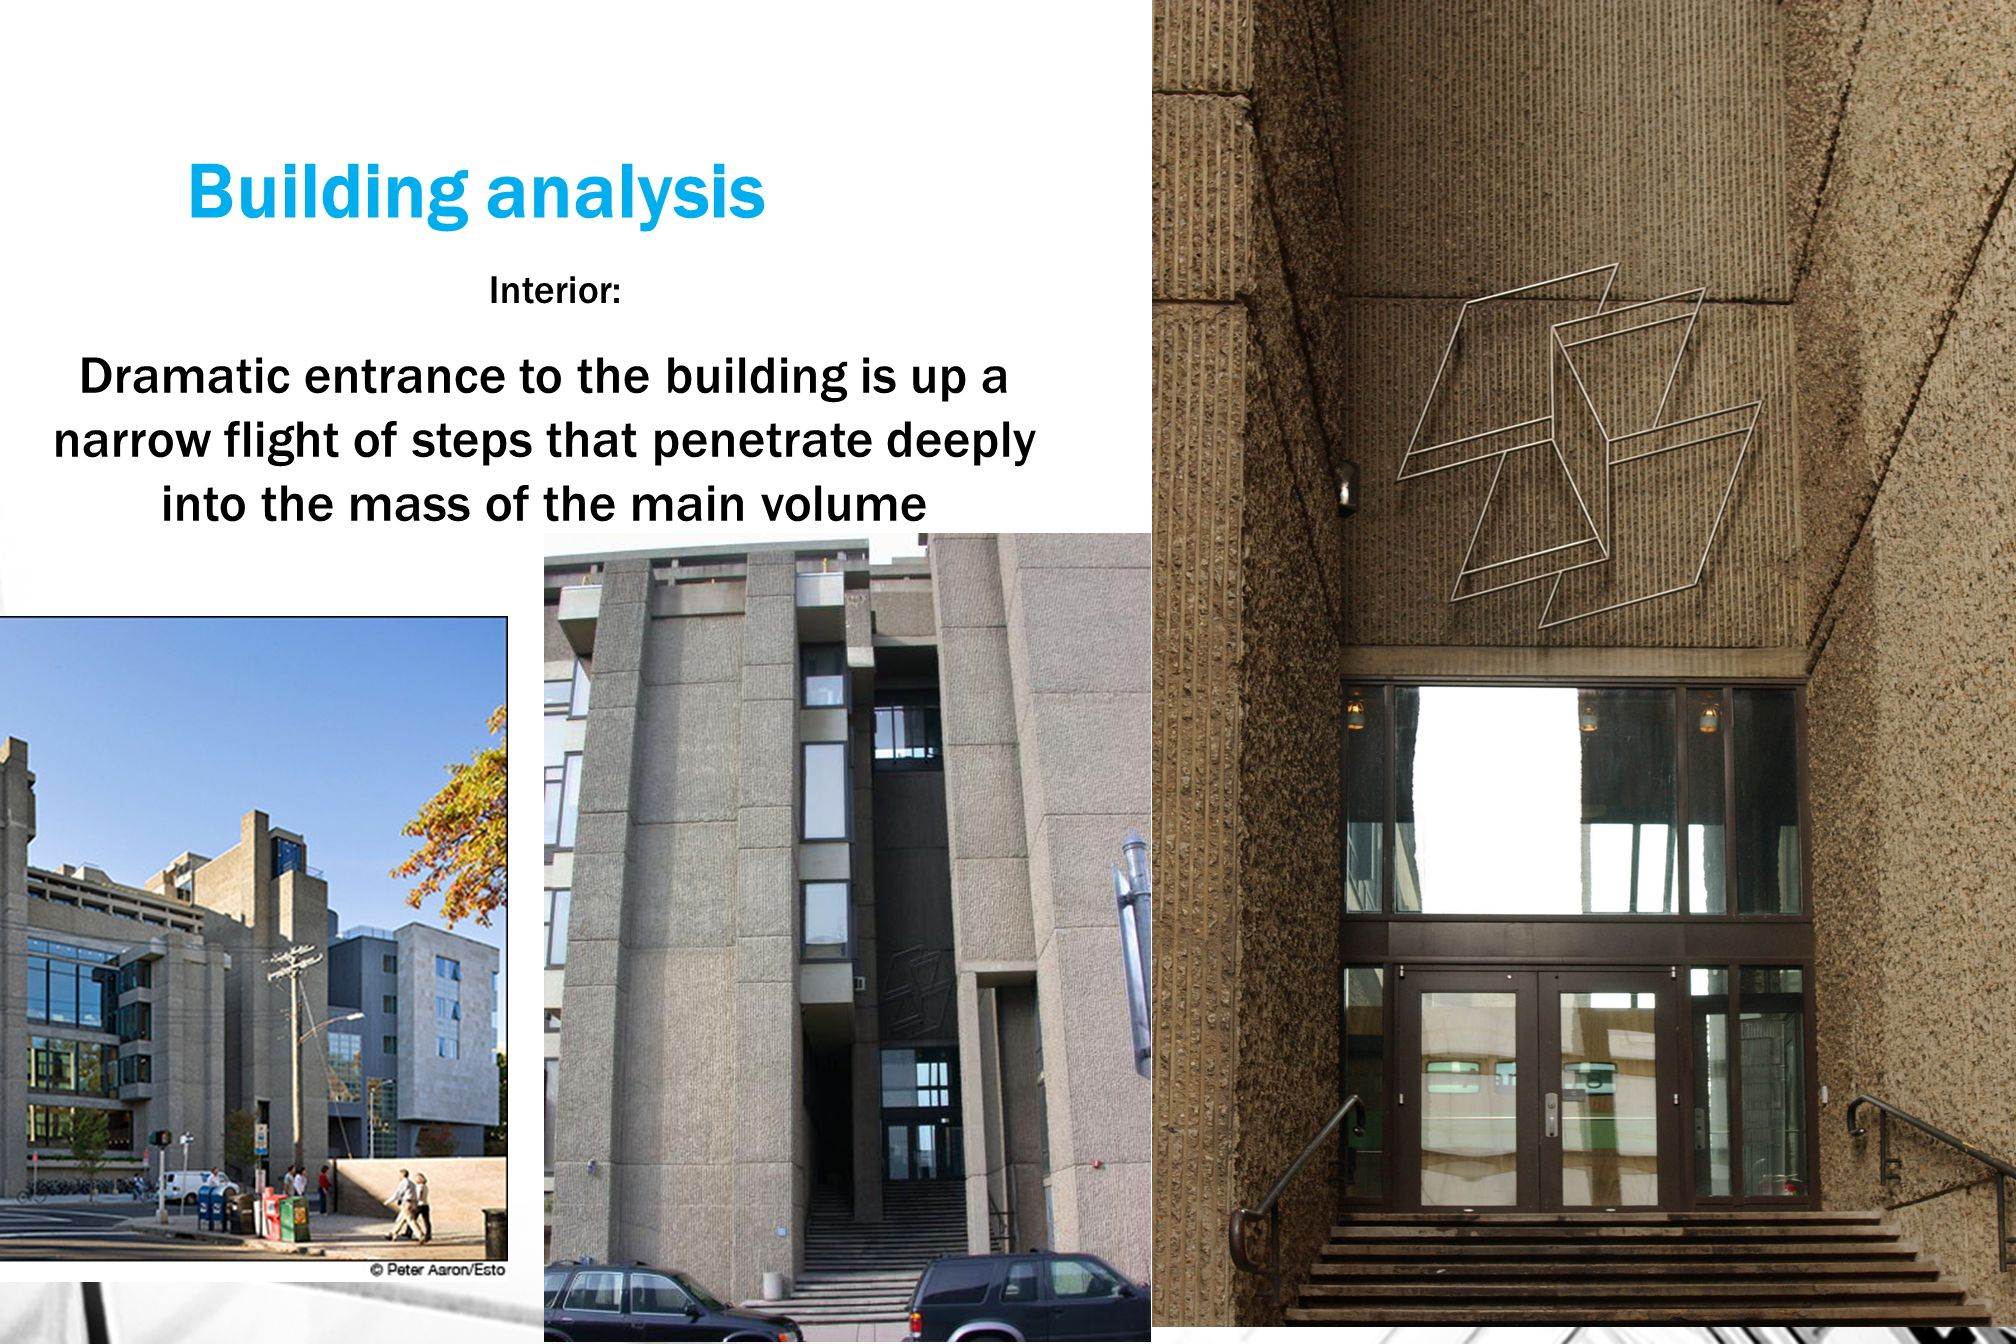 Building analysis Interior: Dramatic entrance to the building is up a narrow flight of steps that penetrate deeply into the mass of the main volume.